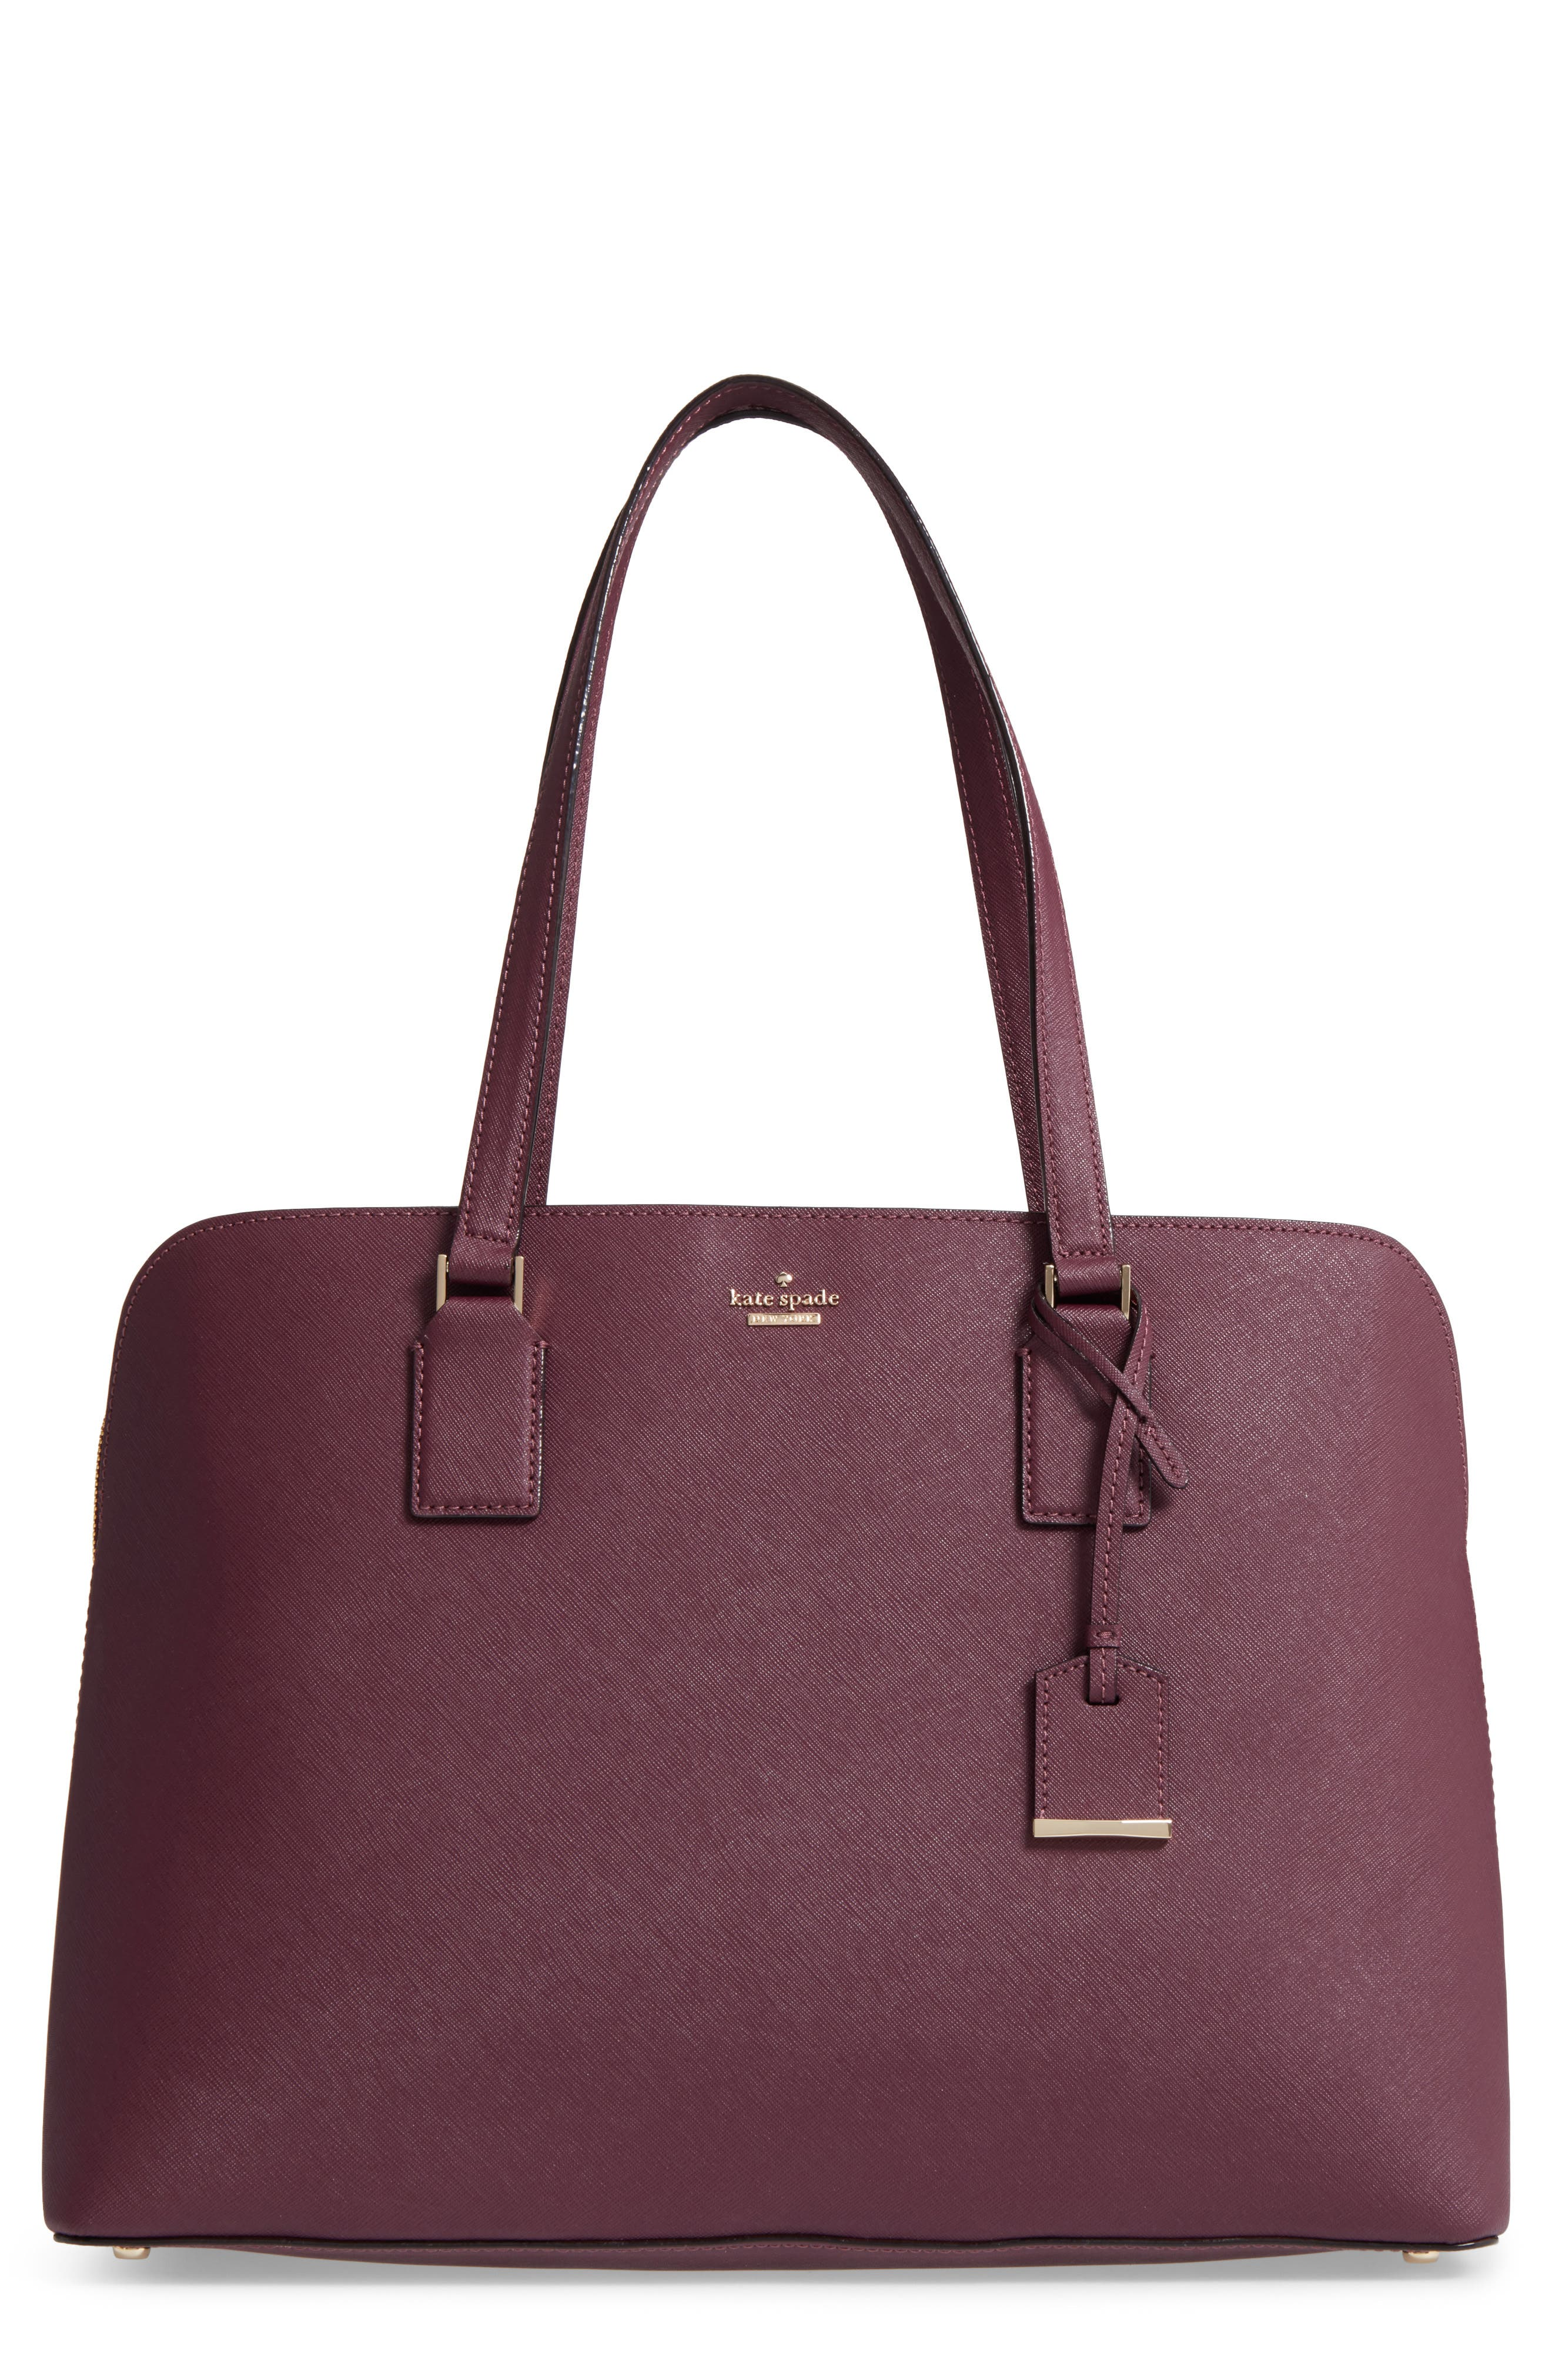 cameron street - marybeth leather tote,                             Main thumbnail 1, color,                             513